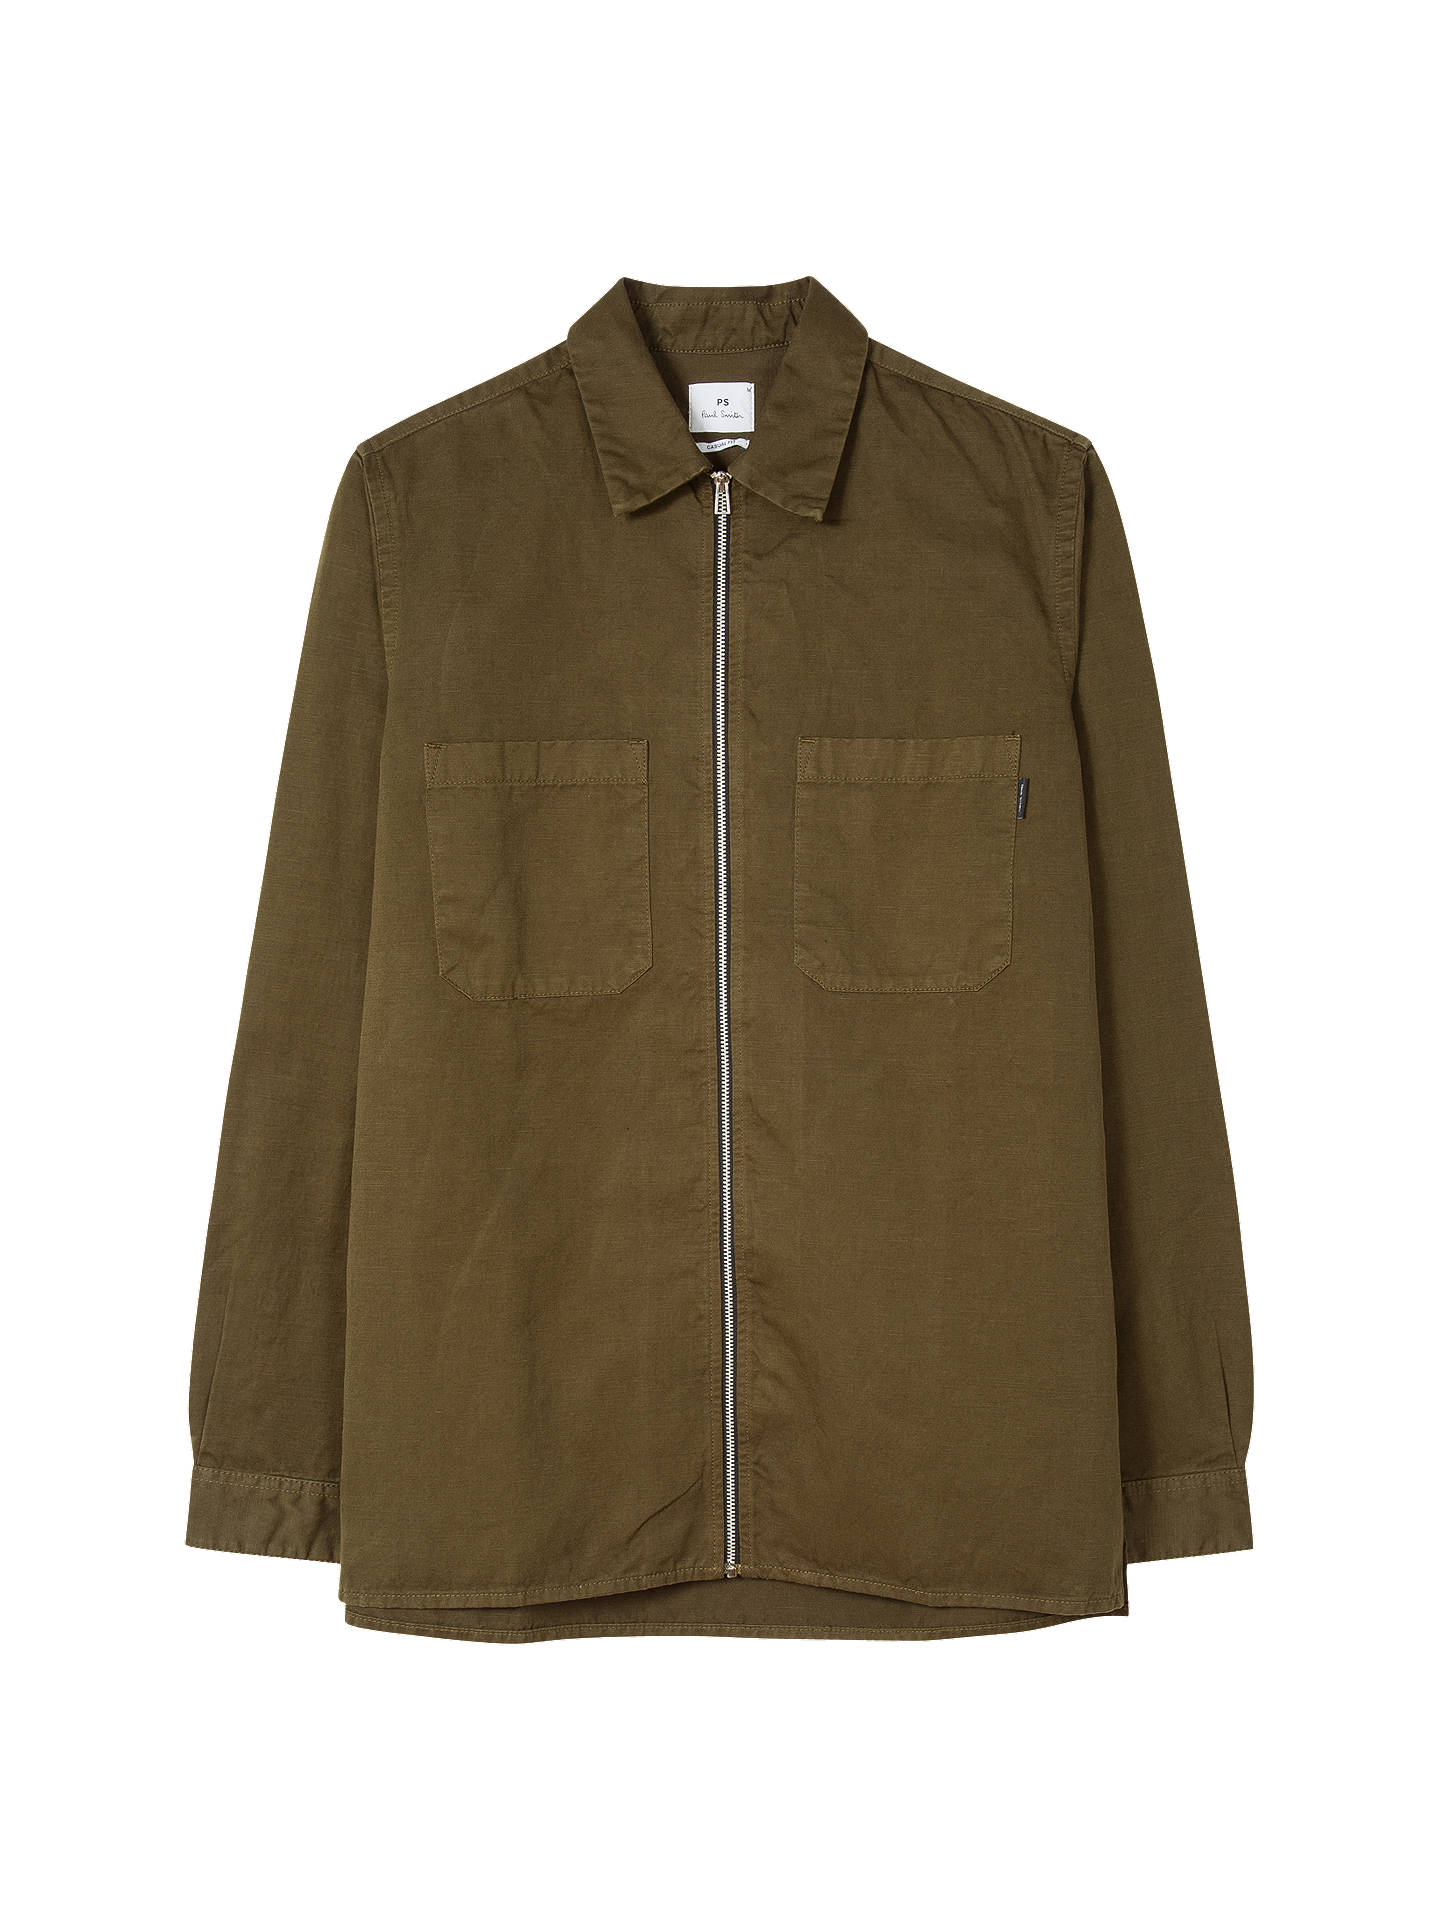 Buy PS Paul Smith Shirt Jacket, Green, L Online at johnlewis.com